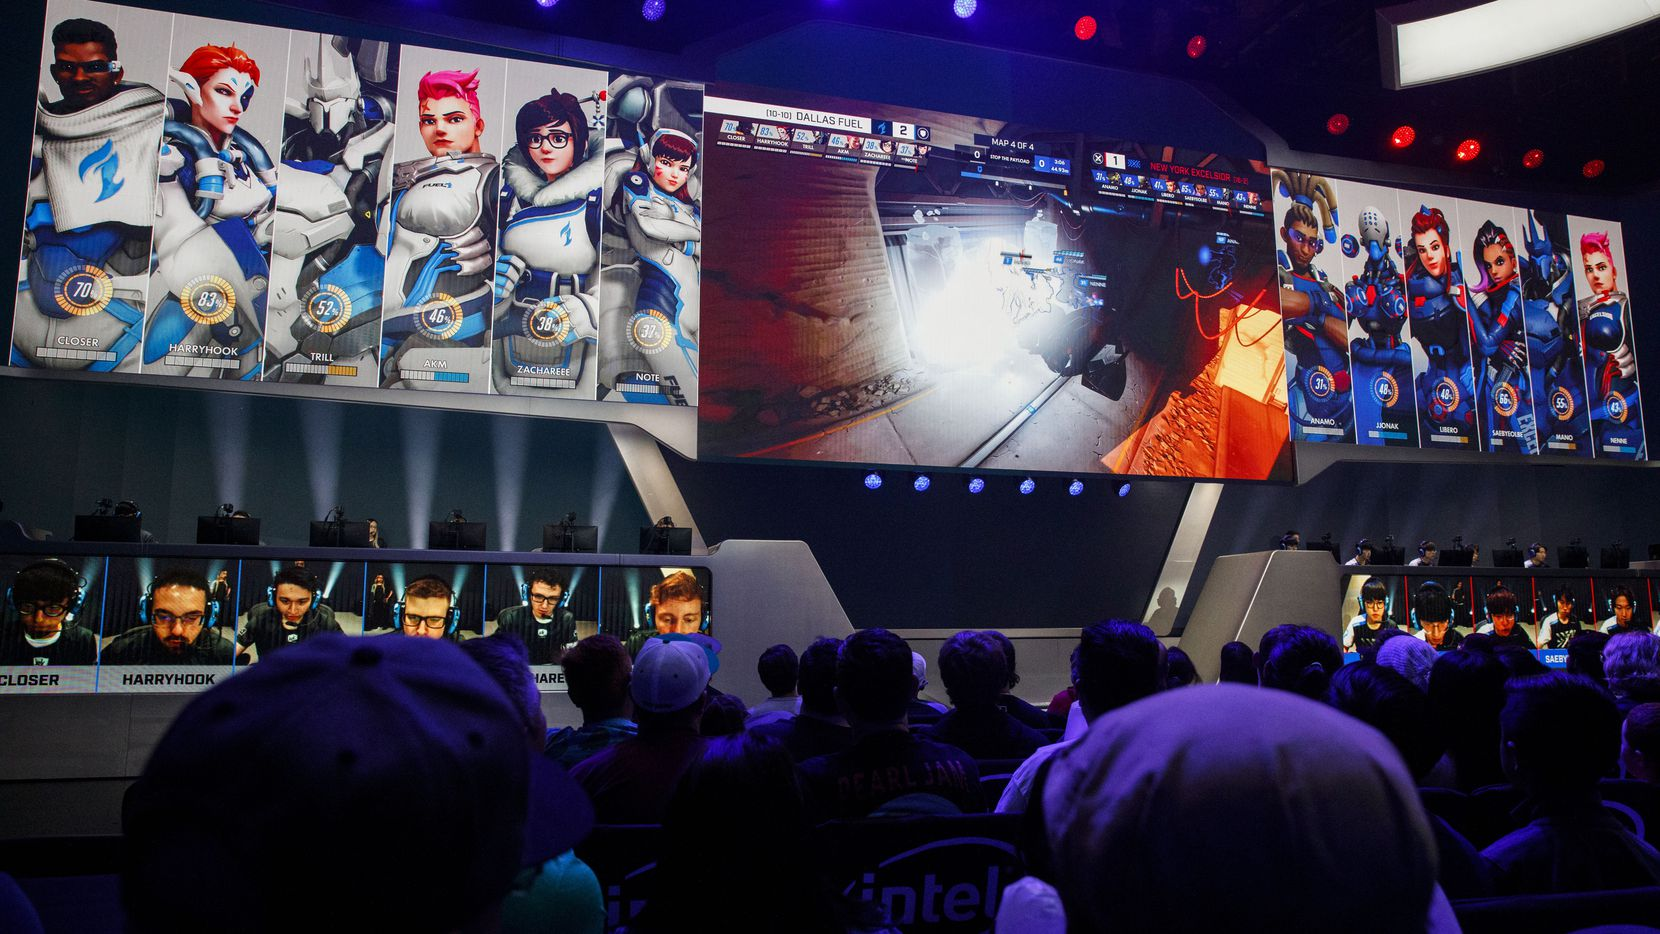 The Dallas Fuel, a founding member of the Overwatch League, will relocate to North Texas in 2020. During the last few weeks of the 2019 season, The Dallas Morning News will cover the Fuel as a foray into the burgeoning world of esports journalism.